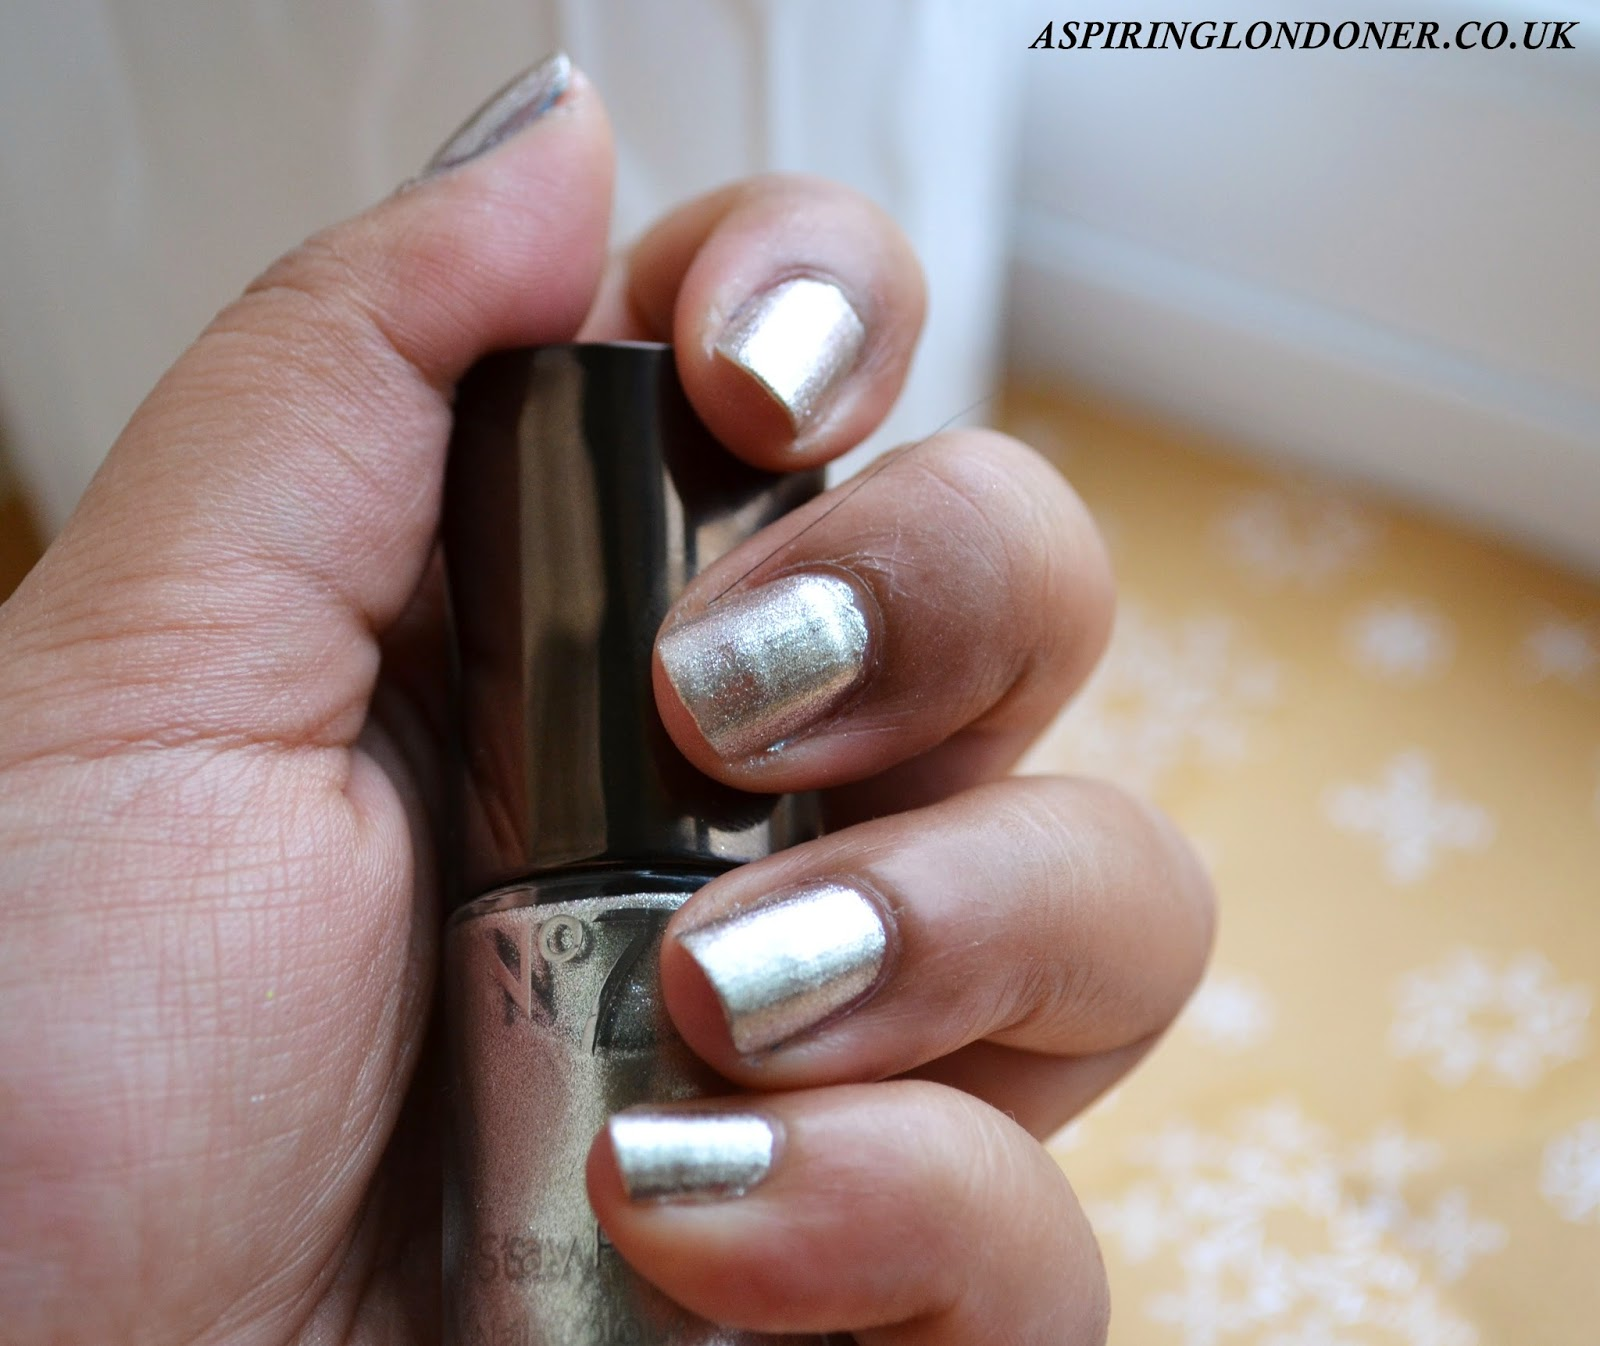 No 7 Gel Nail Polish Review - Creative Touch